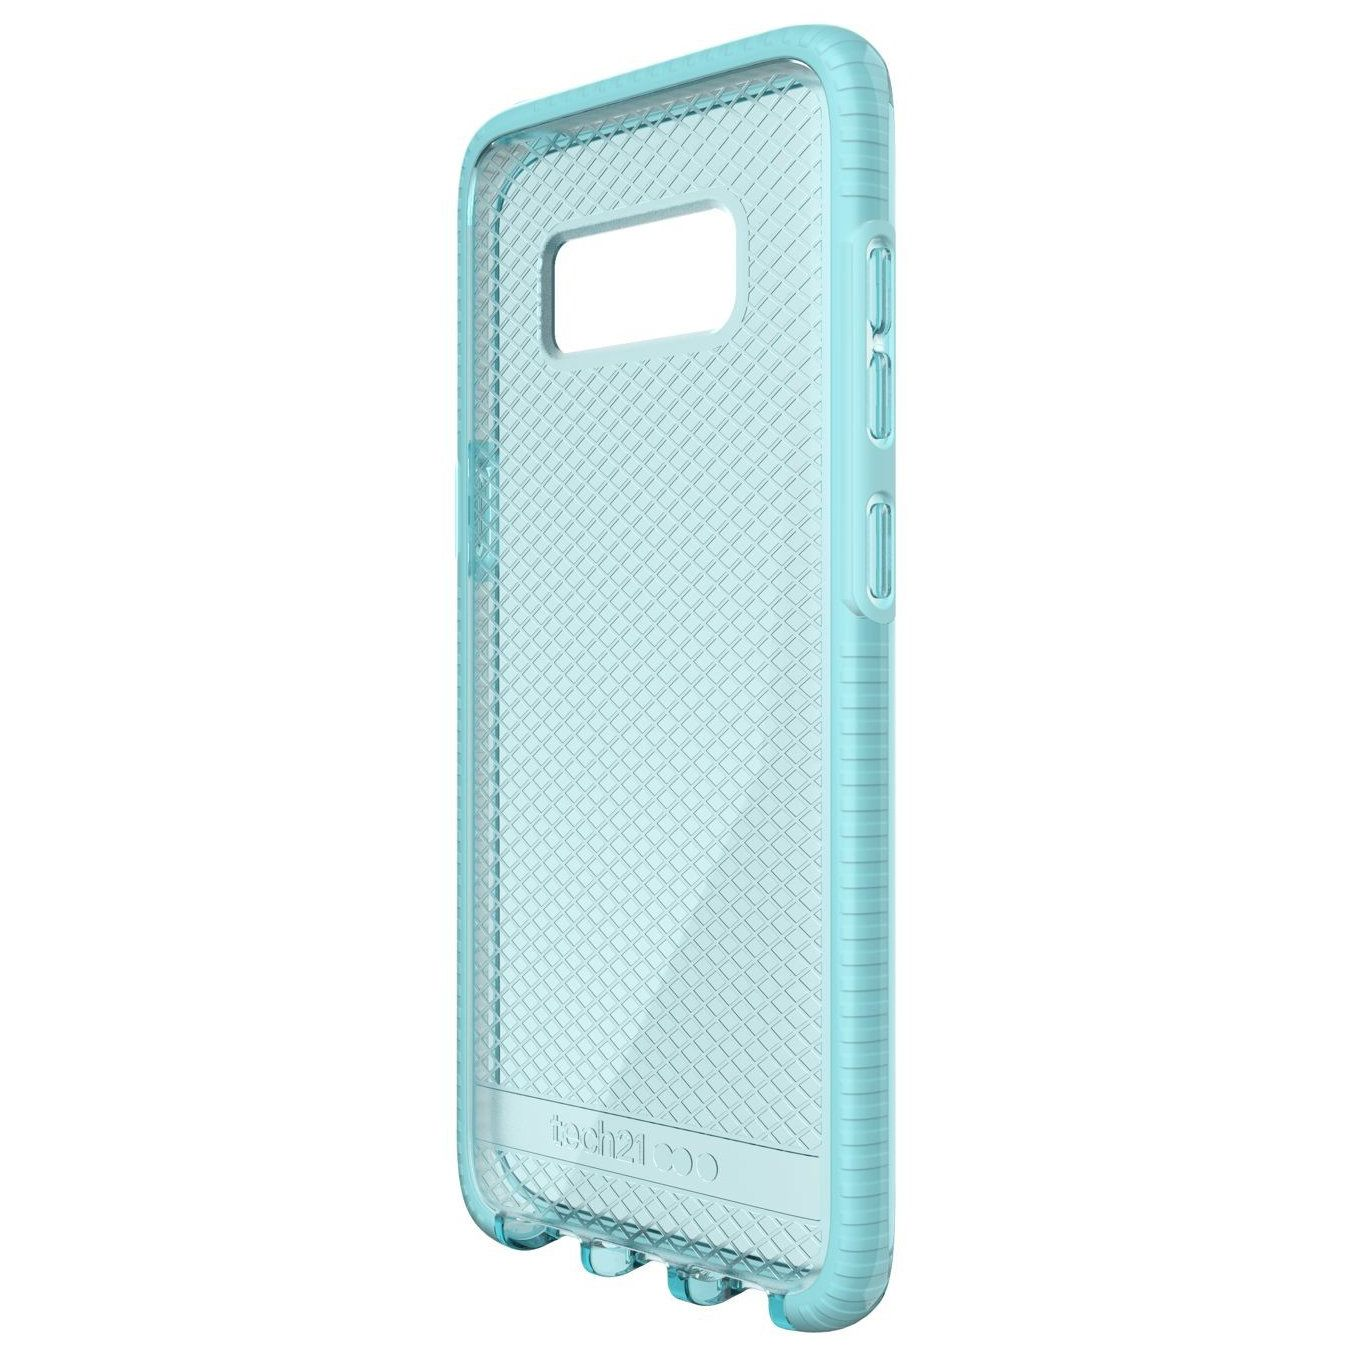 tech 21 Evo Check Case Samsung Galaxy S8